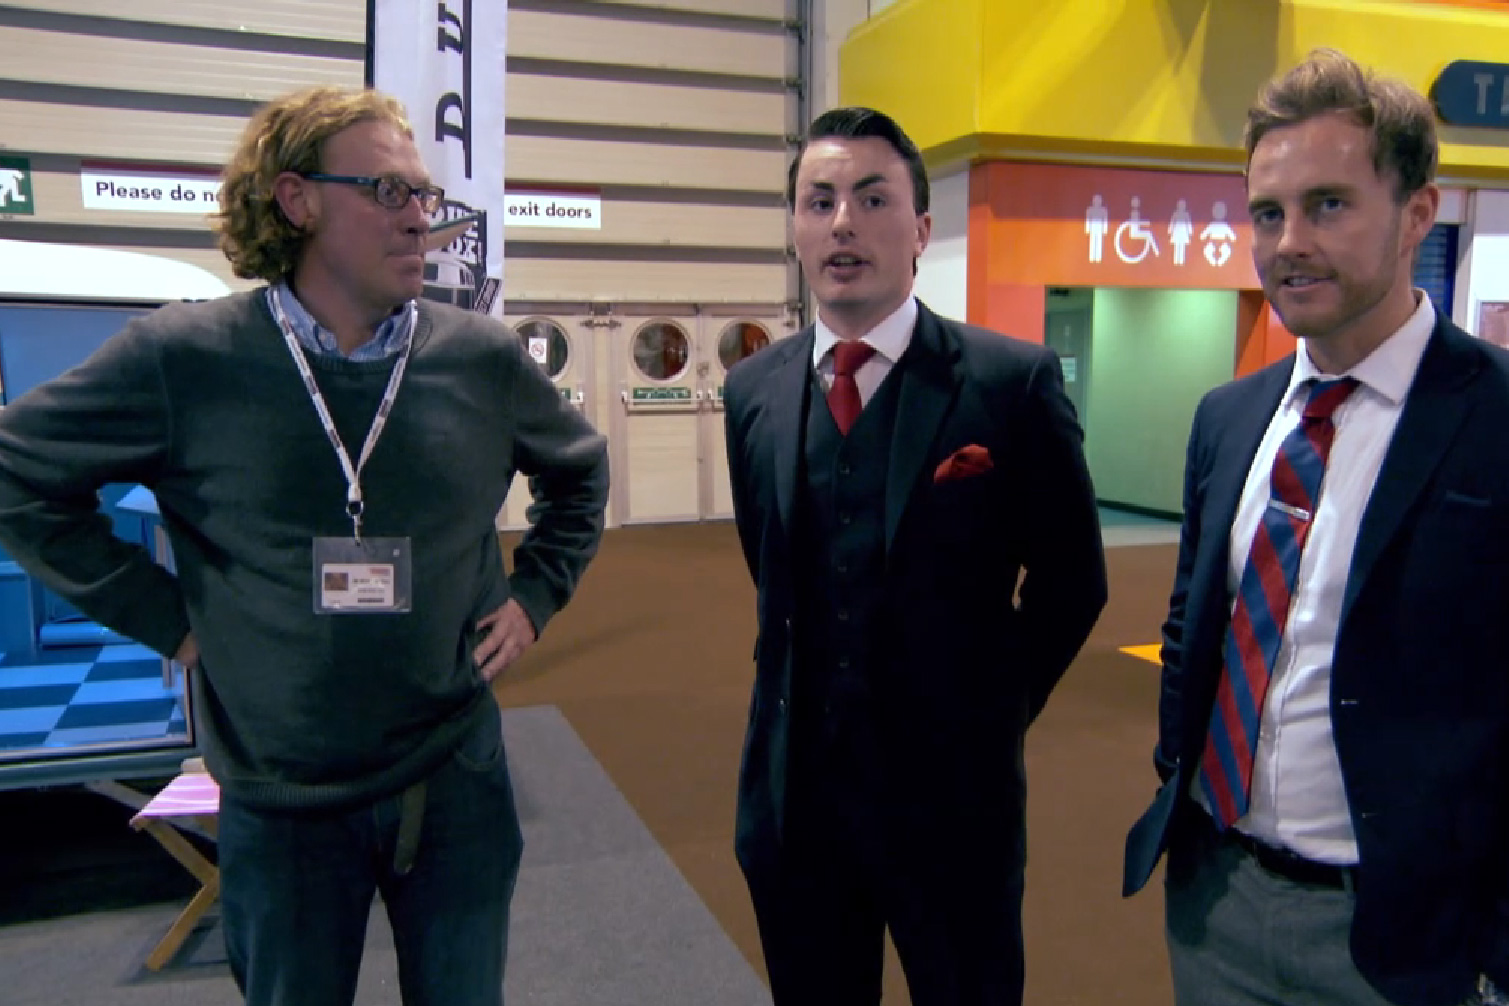 Matt Clay (left) with the BBC Apprentice contestants